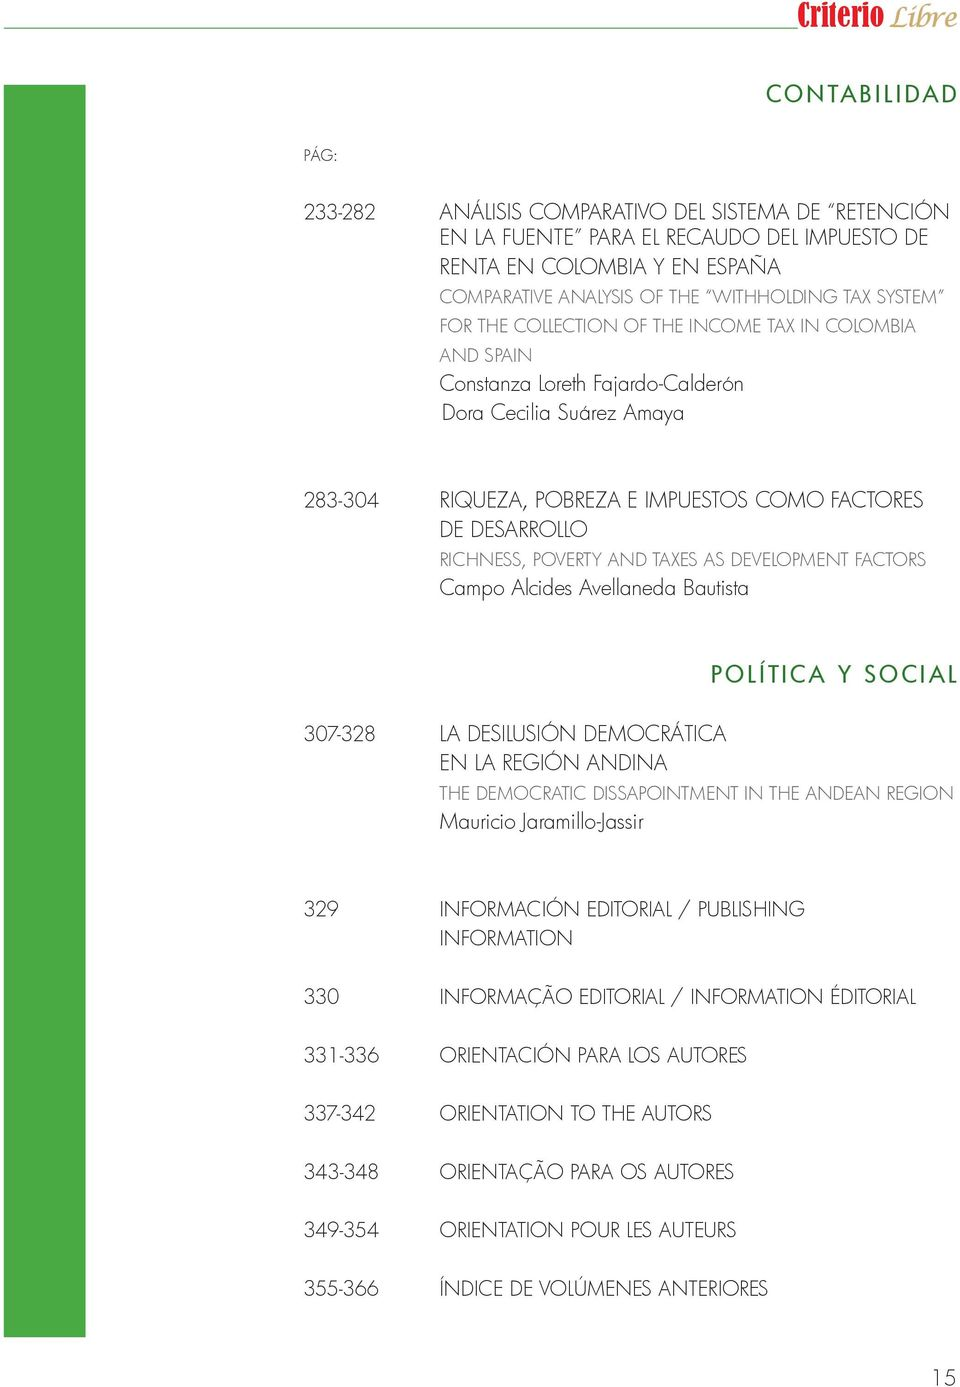 DESARROLLO RICHNESS, POVERTY AND TAXES AS DEVELOPMENT FACTORS Campo Alcides Avellaneda Bautista PolítiC a y soc ial 307-328 LA DESILUSIÓN DEMOCRáTICA EN LA REGIÓN ANDINA THE DEMOCRATIC DISSAPOINTMENT